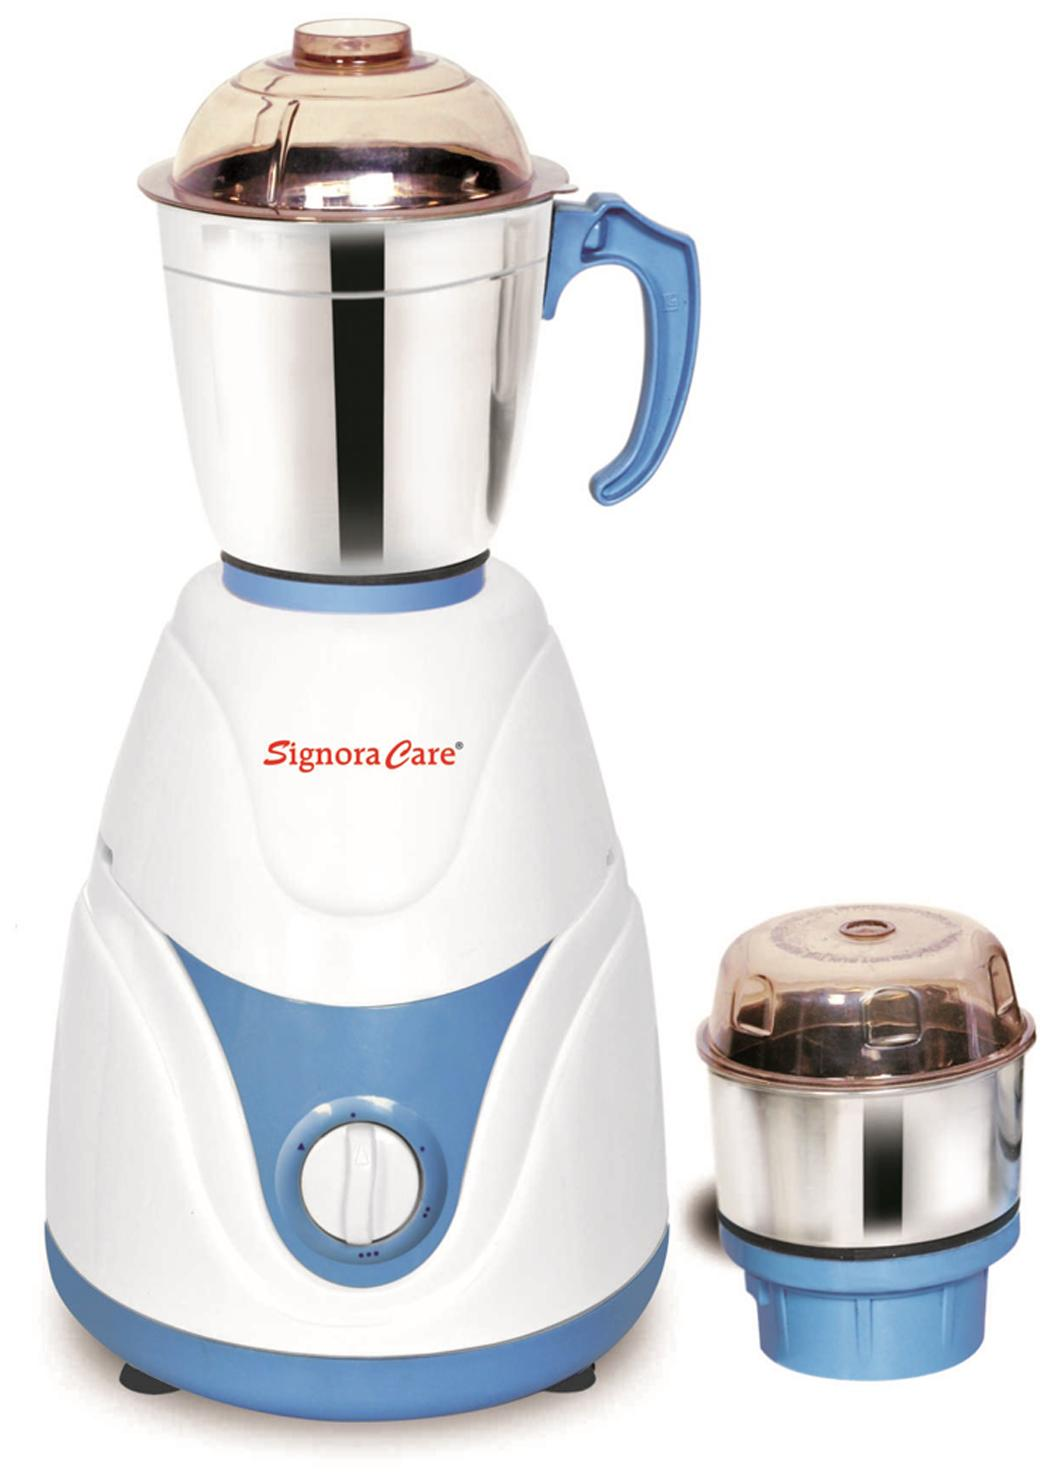 SignoraCare Eco Plus 500 W Mixer Grinder (White & Blue/2 Jar)